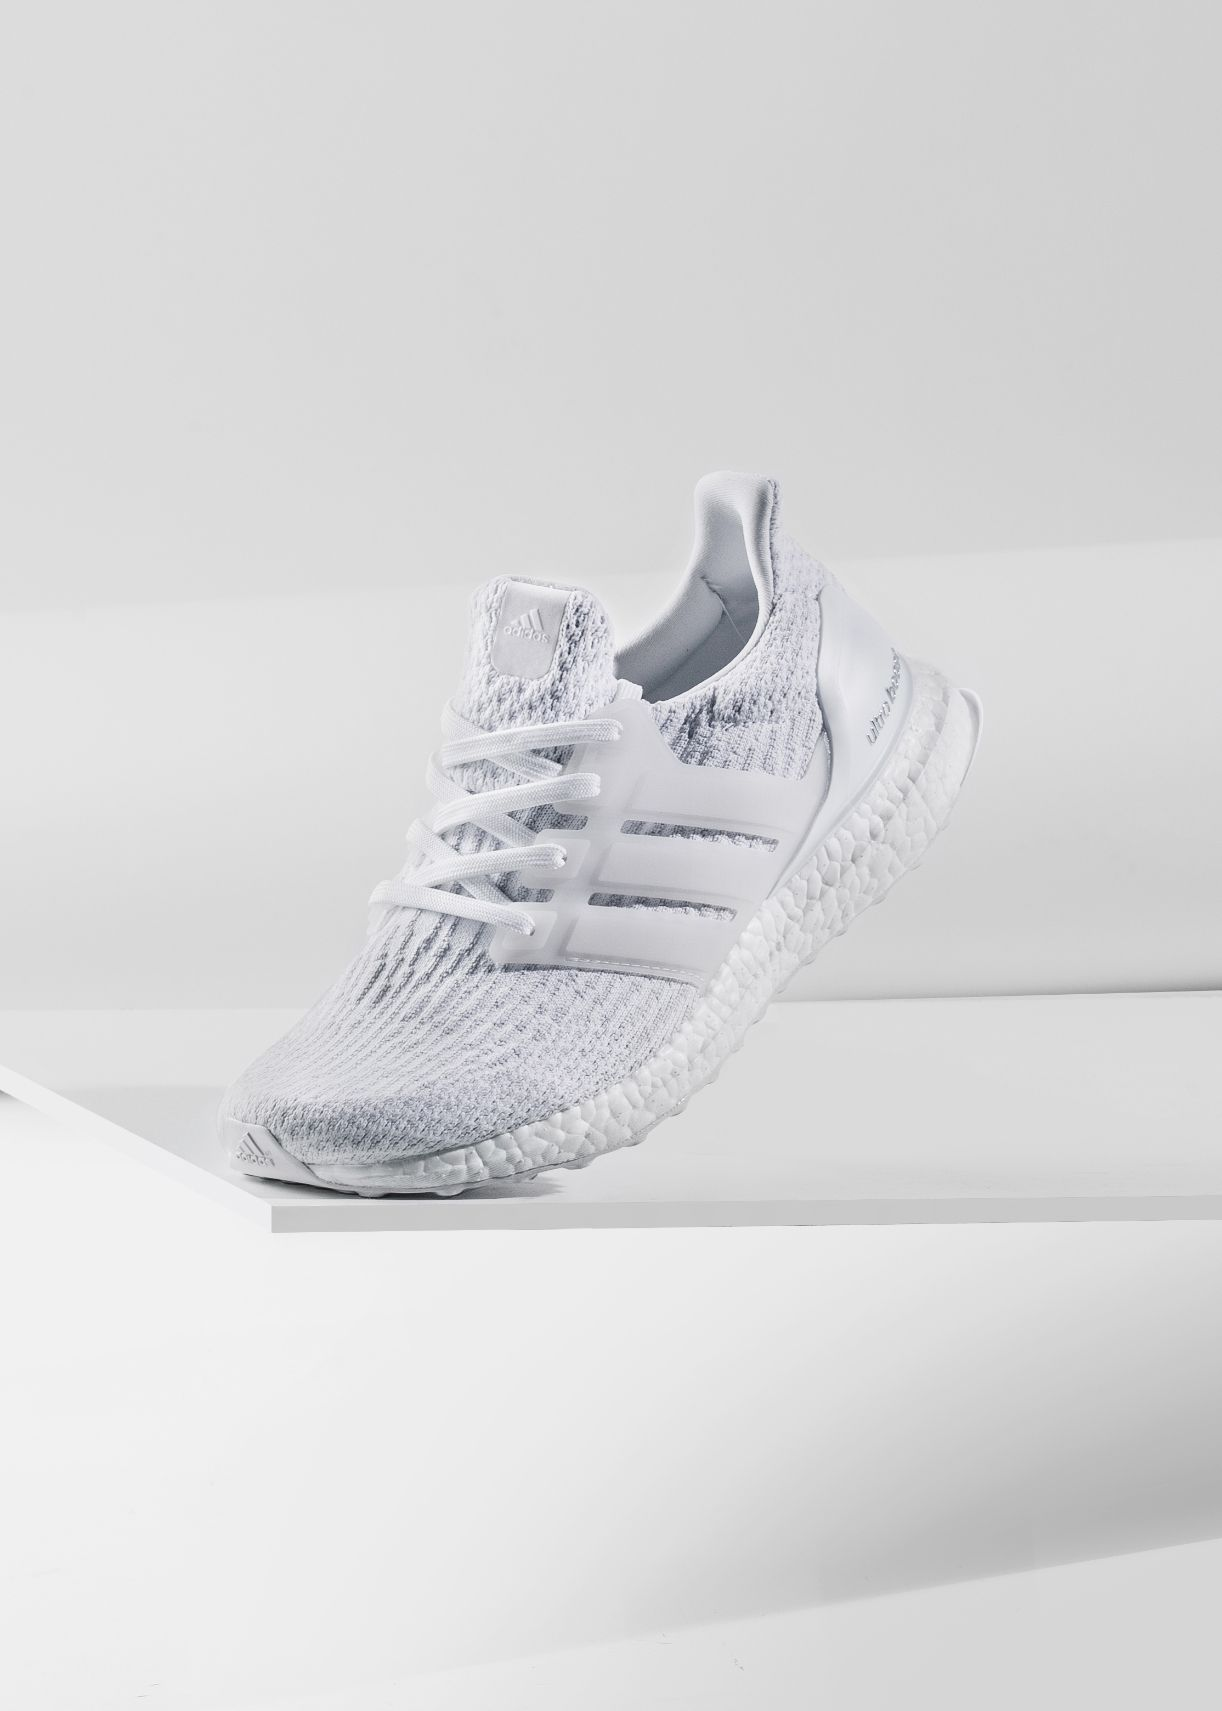 "8d3b1ce6d01b5 Adidas Ultra Boost 3.0 ""Triple White""  Adidas  Ultra  Boost  Primeknit   Fashion  Streetwear  Style  Urban  Lookbook  Photography  Footwear   Sneakers  Kicks ..."